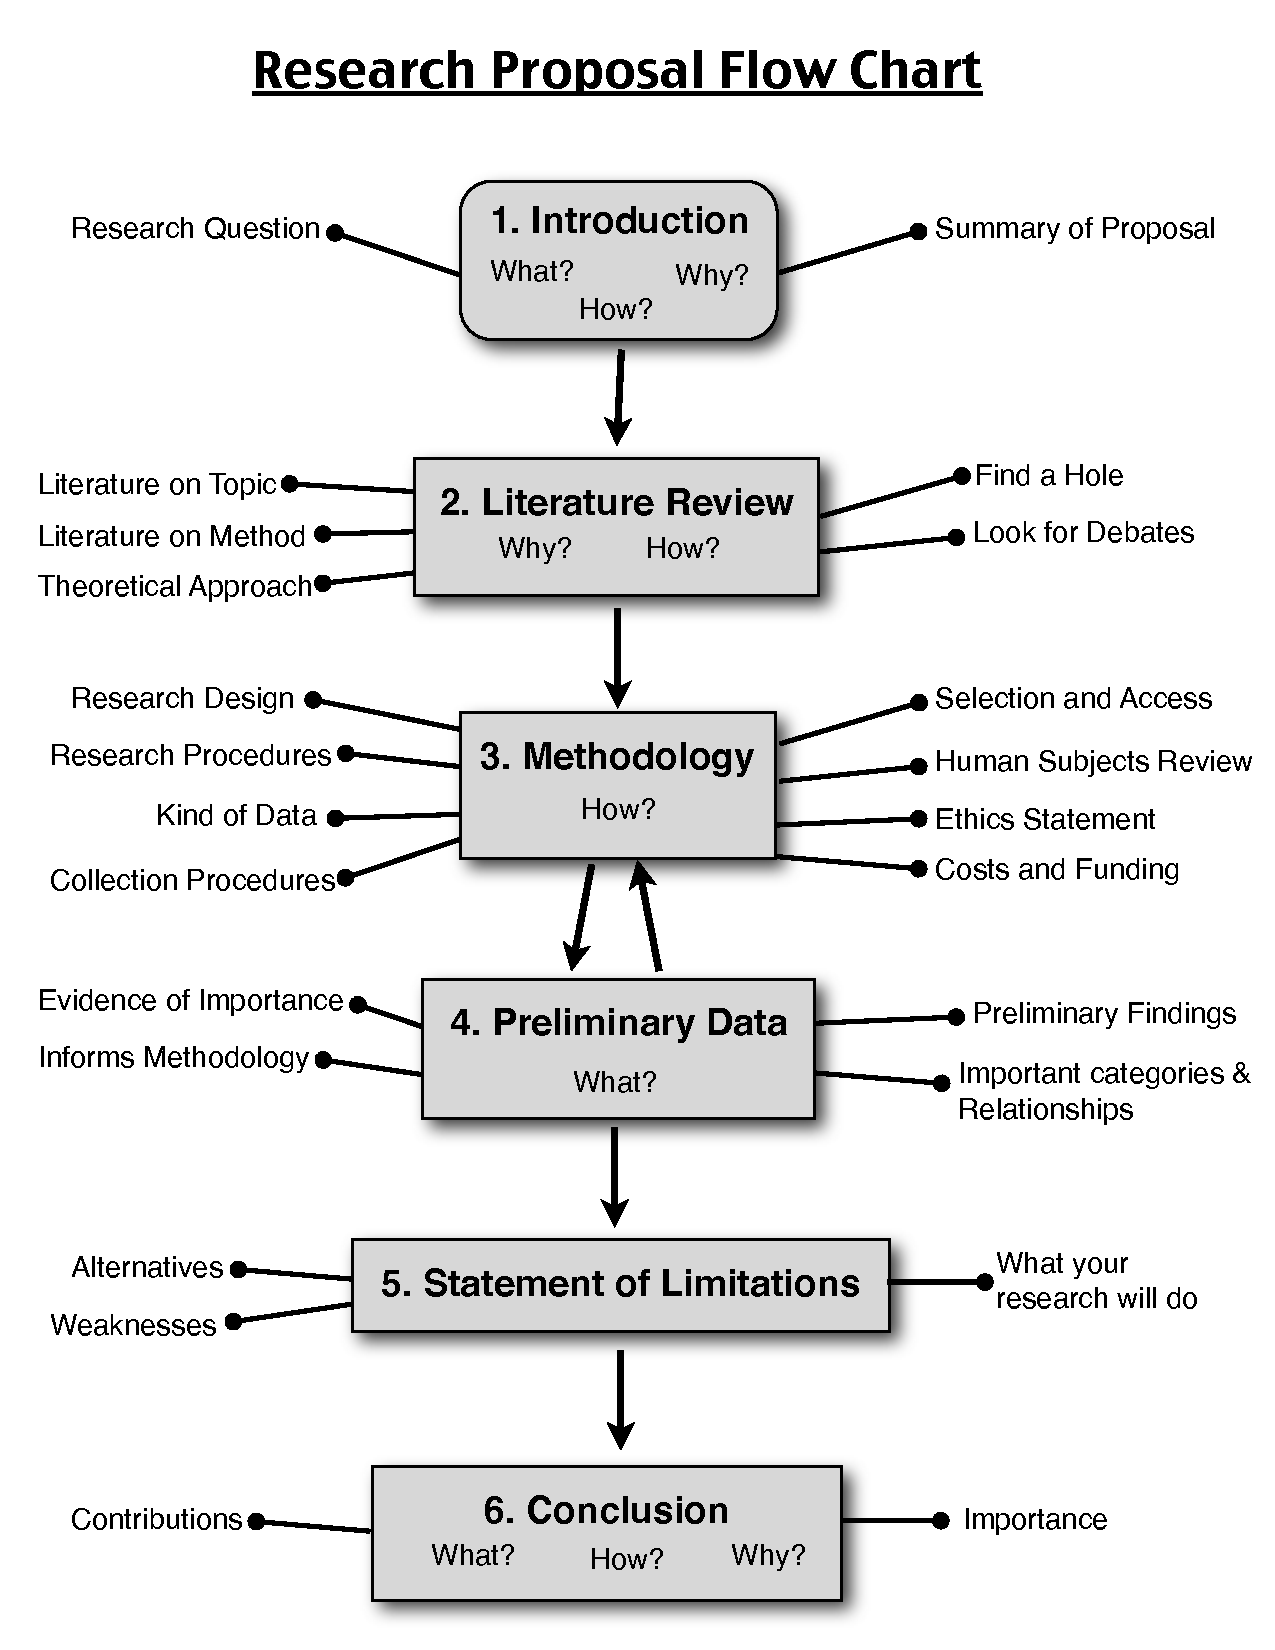 Research Proposal Flow Chart  School Stuff    Chart